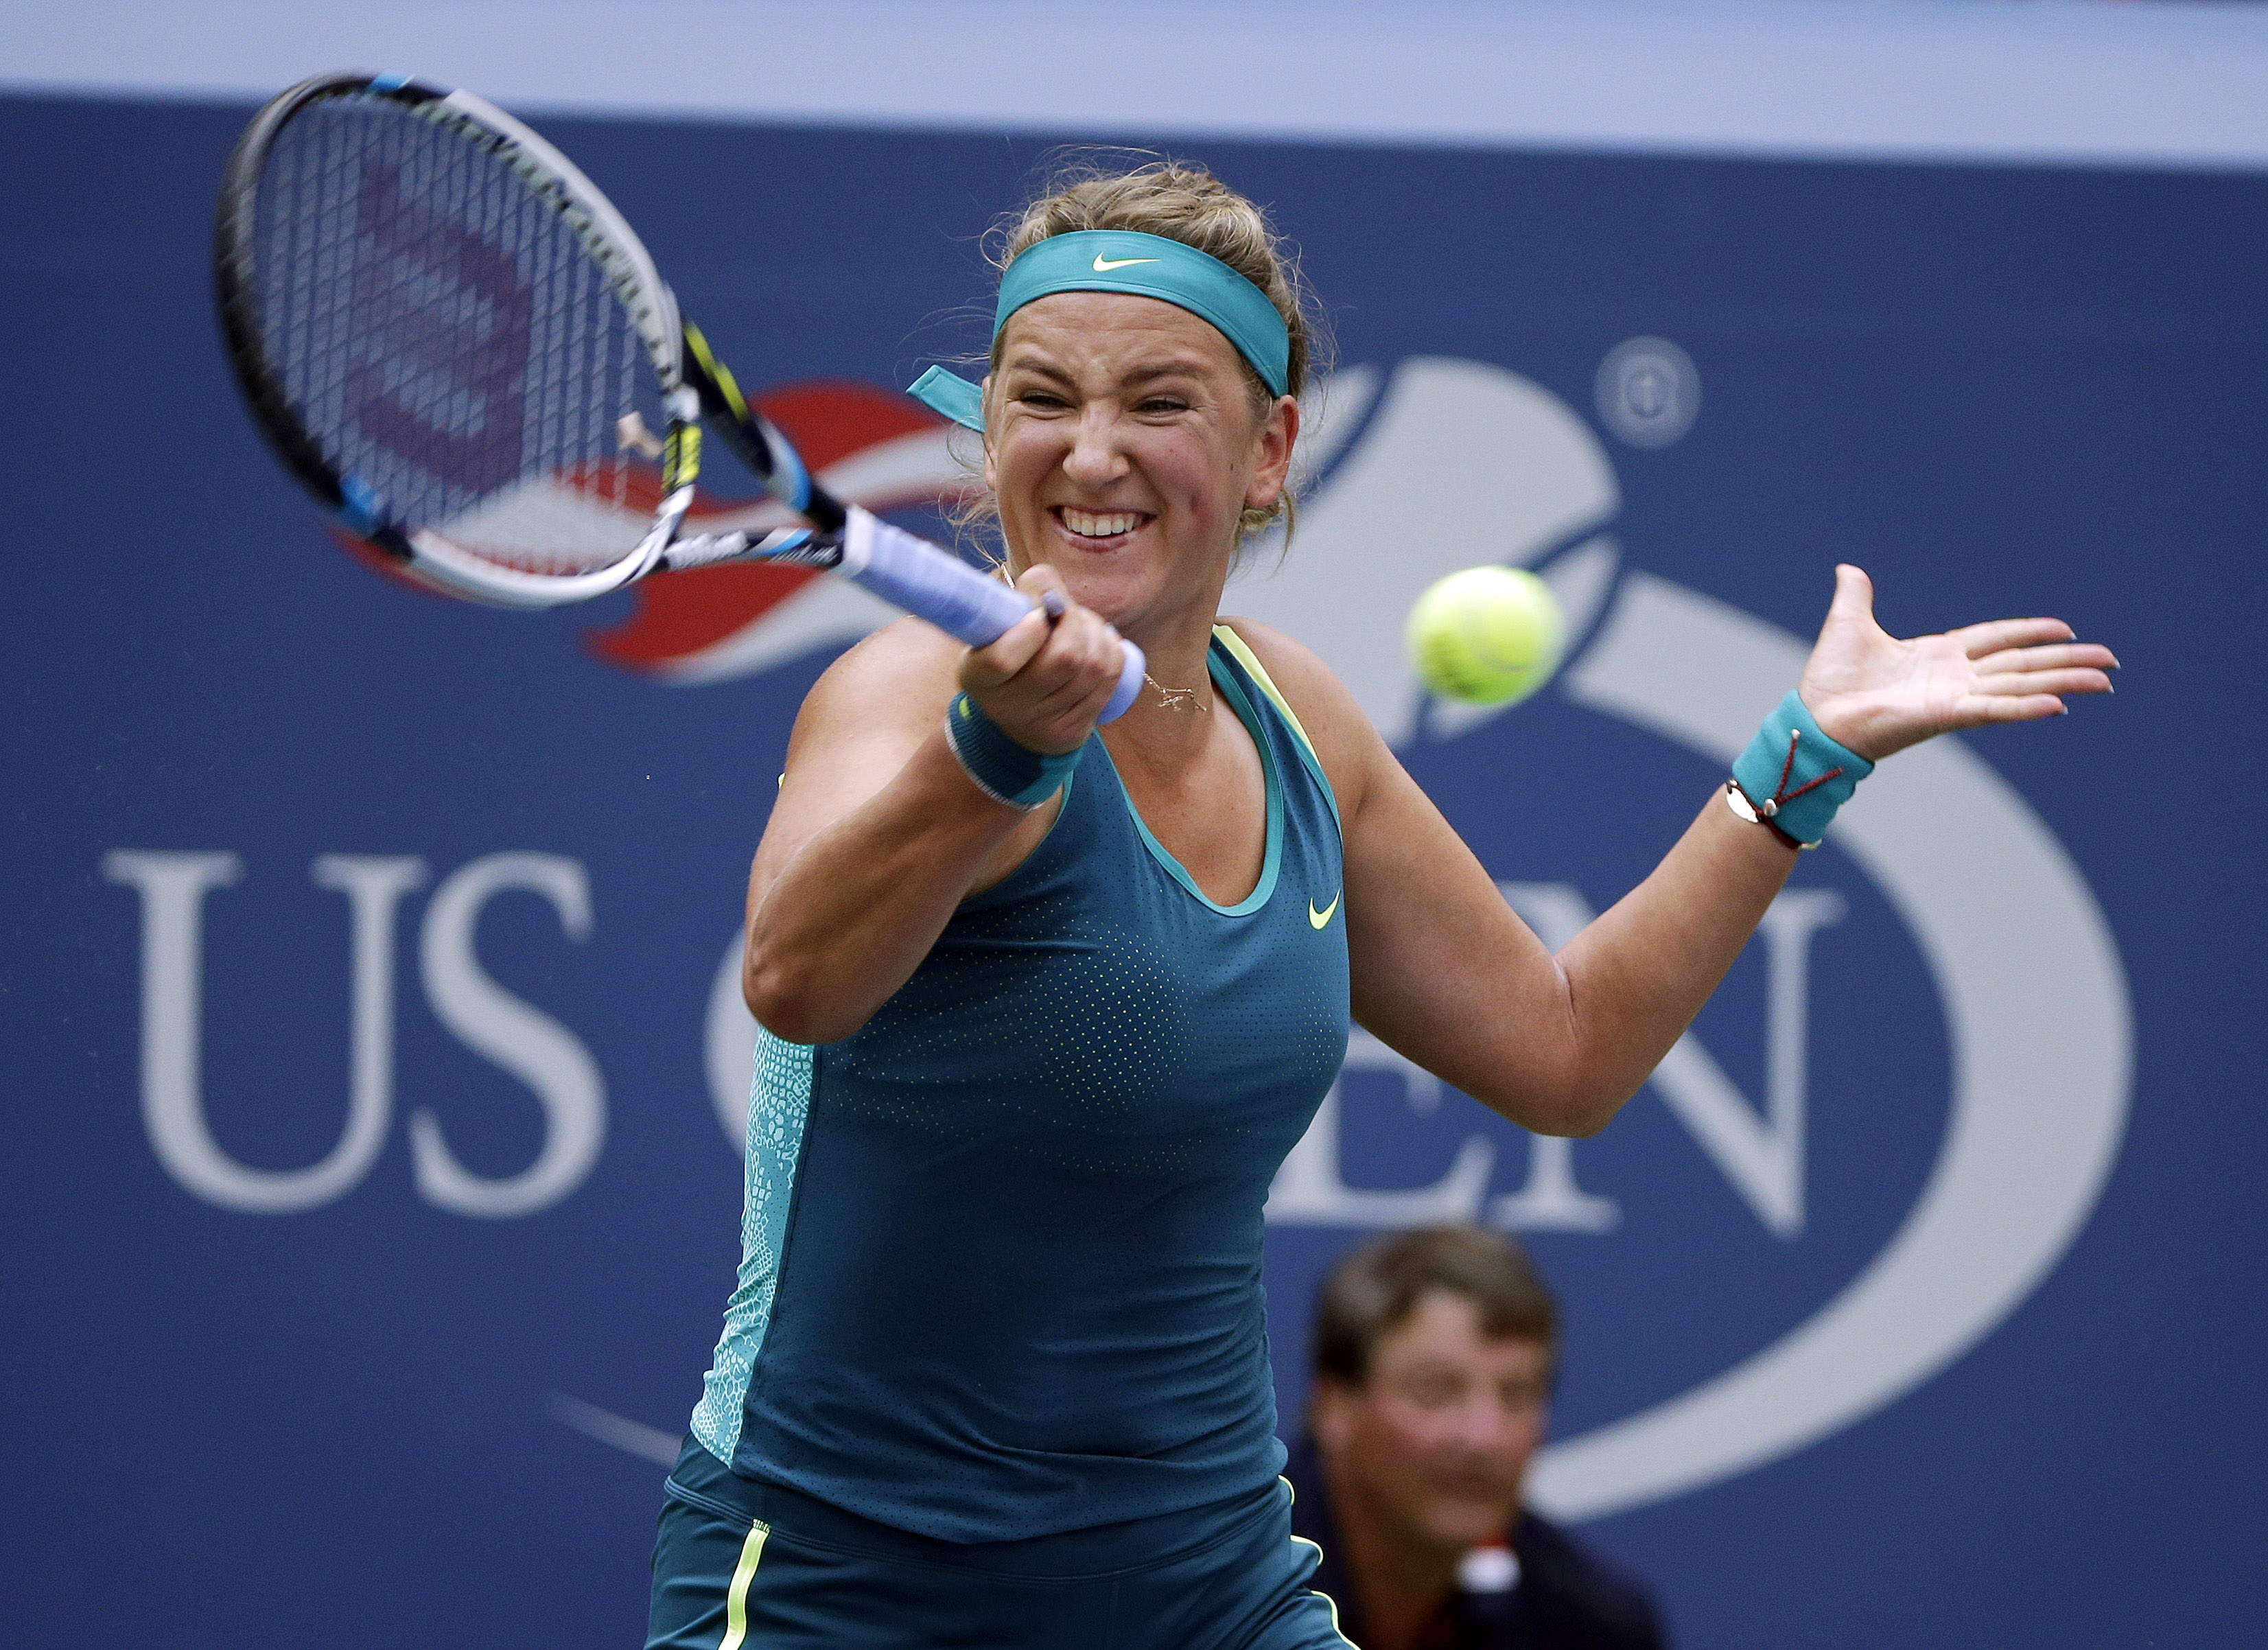 FILE - In this Sept. 3, 2015, file photo, Victoria Azarenka, of Belarus, returns a shot to Yanina Wickmayer, of Belgium, during the second round of the U.S. Open tennis tournament, in New York. Two-time Australian Open champion Victoria Azarenka says her